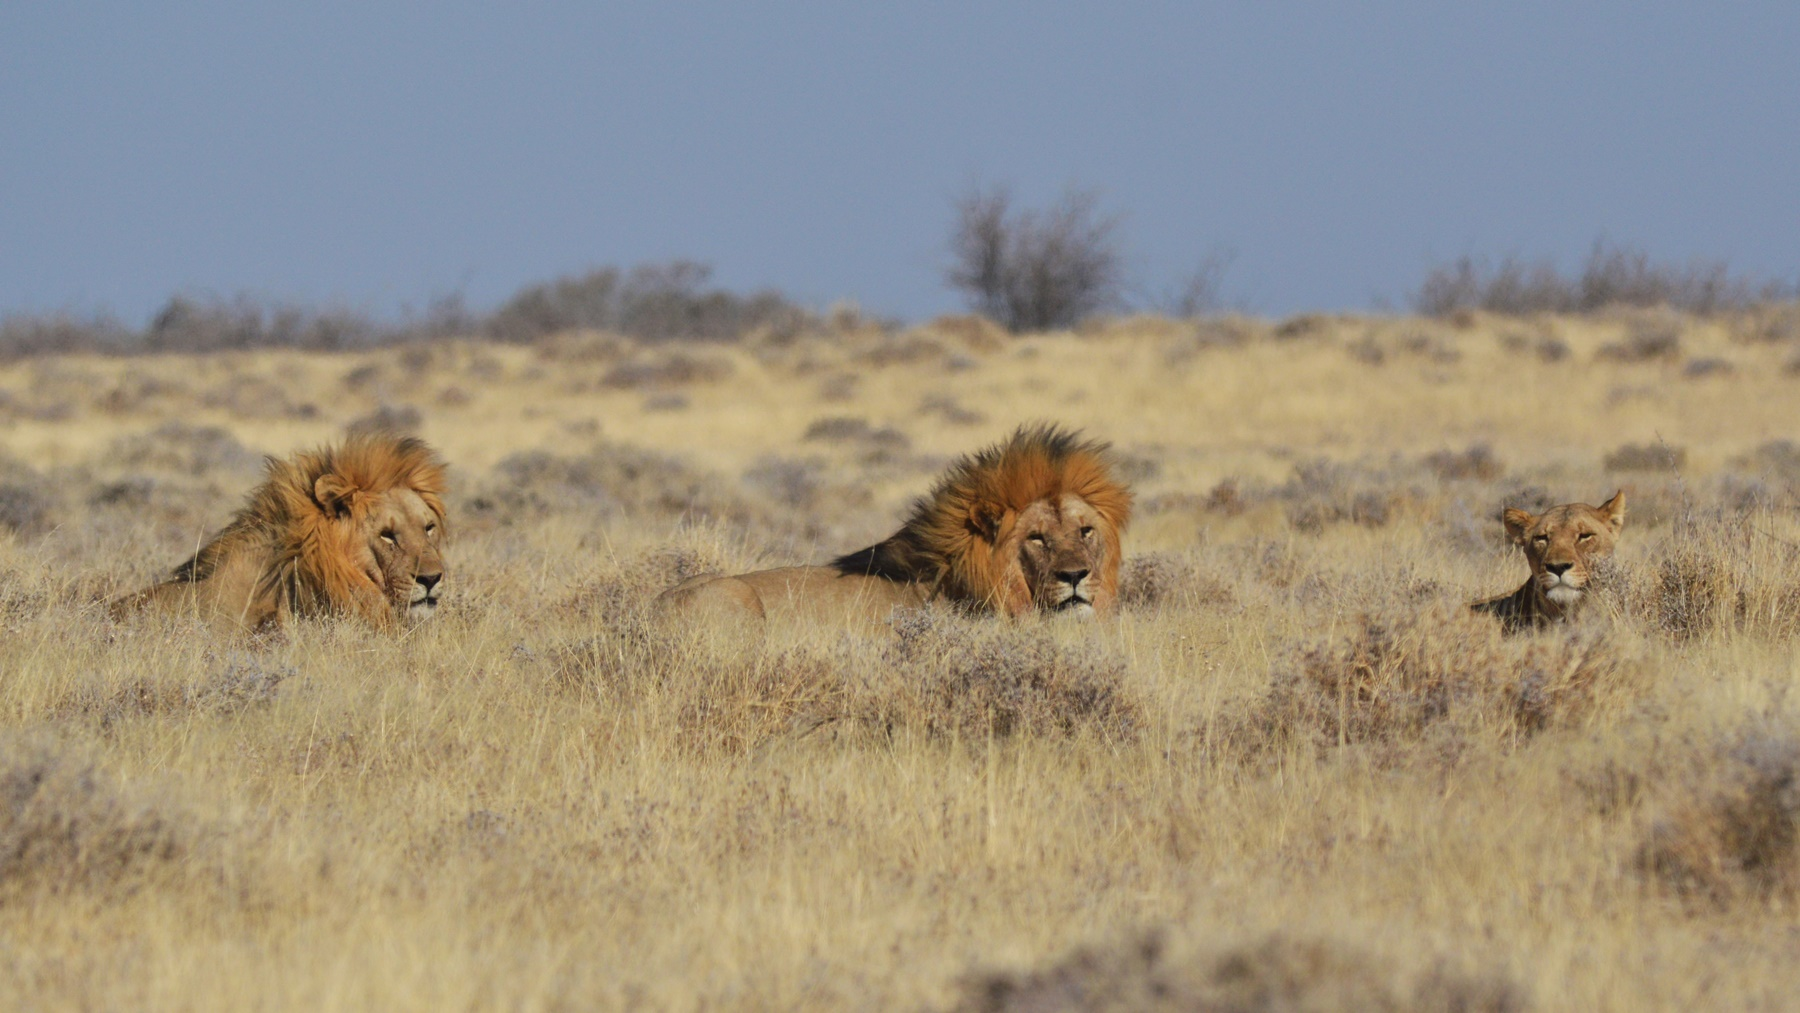 The most terrifying predators in Etosha—lions. Picture is for illustrative purposes, not the real event encountered.